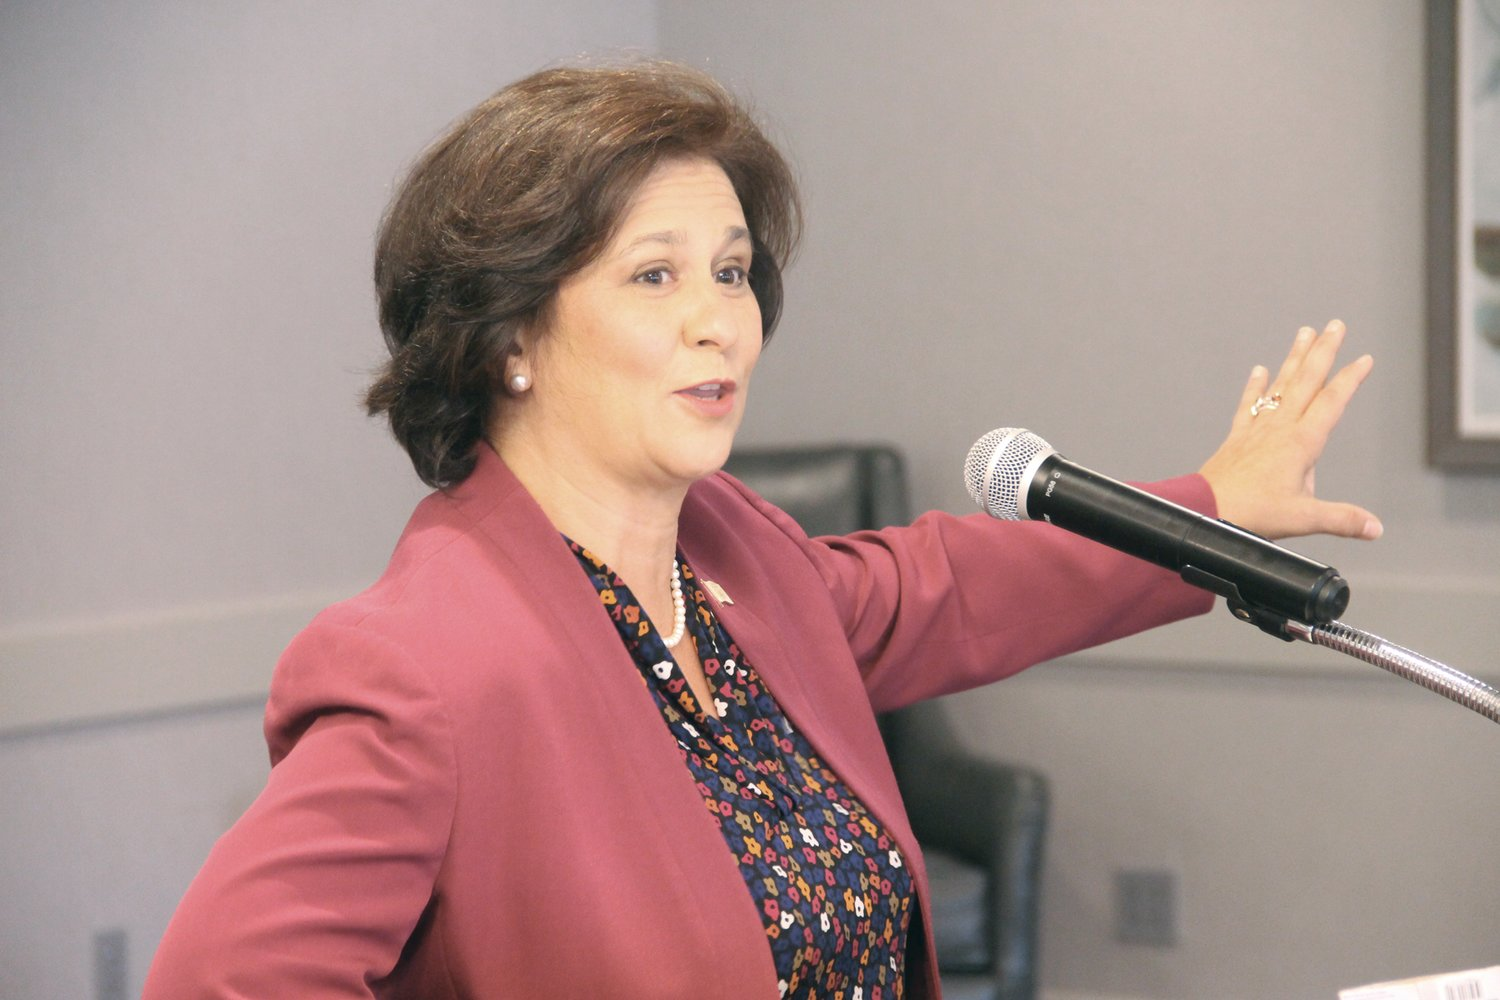 VOTING DURING A PANDEMIC: Secretary of State Nellie Gorbea outlined how her office is promoting mail ballots and early voting as alternatives to visiting the polls on election day during a meeting of the Warwick Rotary Club last Thursday.